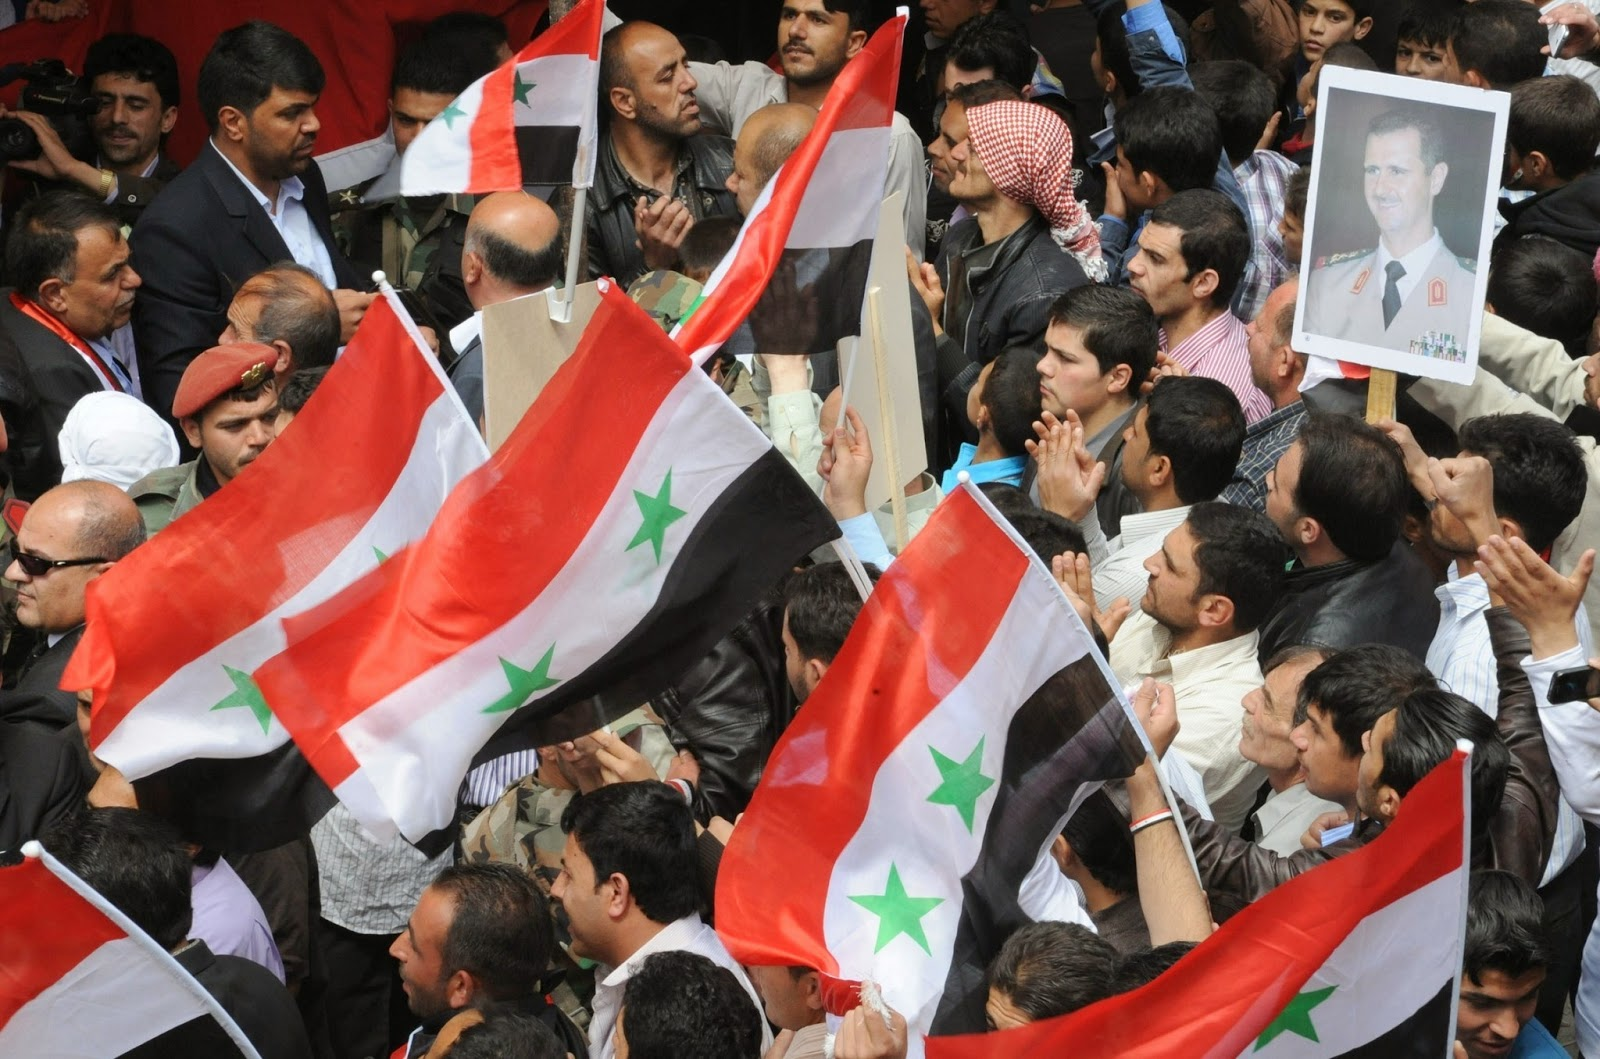 la fg wn syria election date 20140421 Syria: Elections Are a Battle Won, But the War Goes On